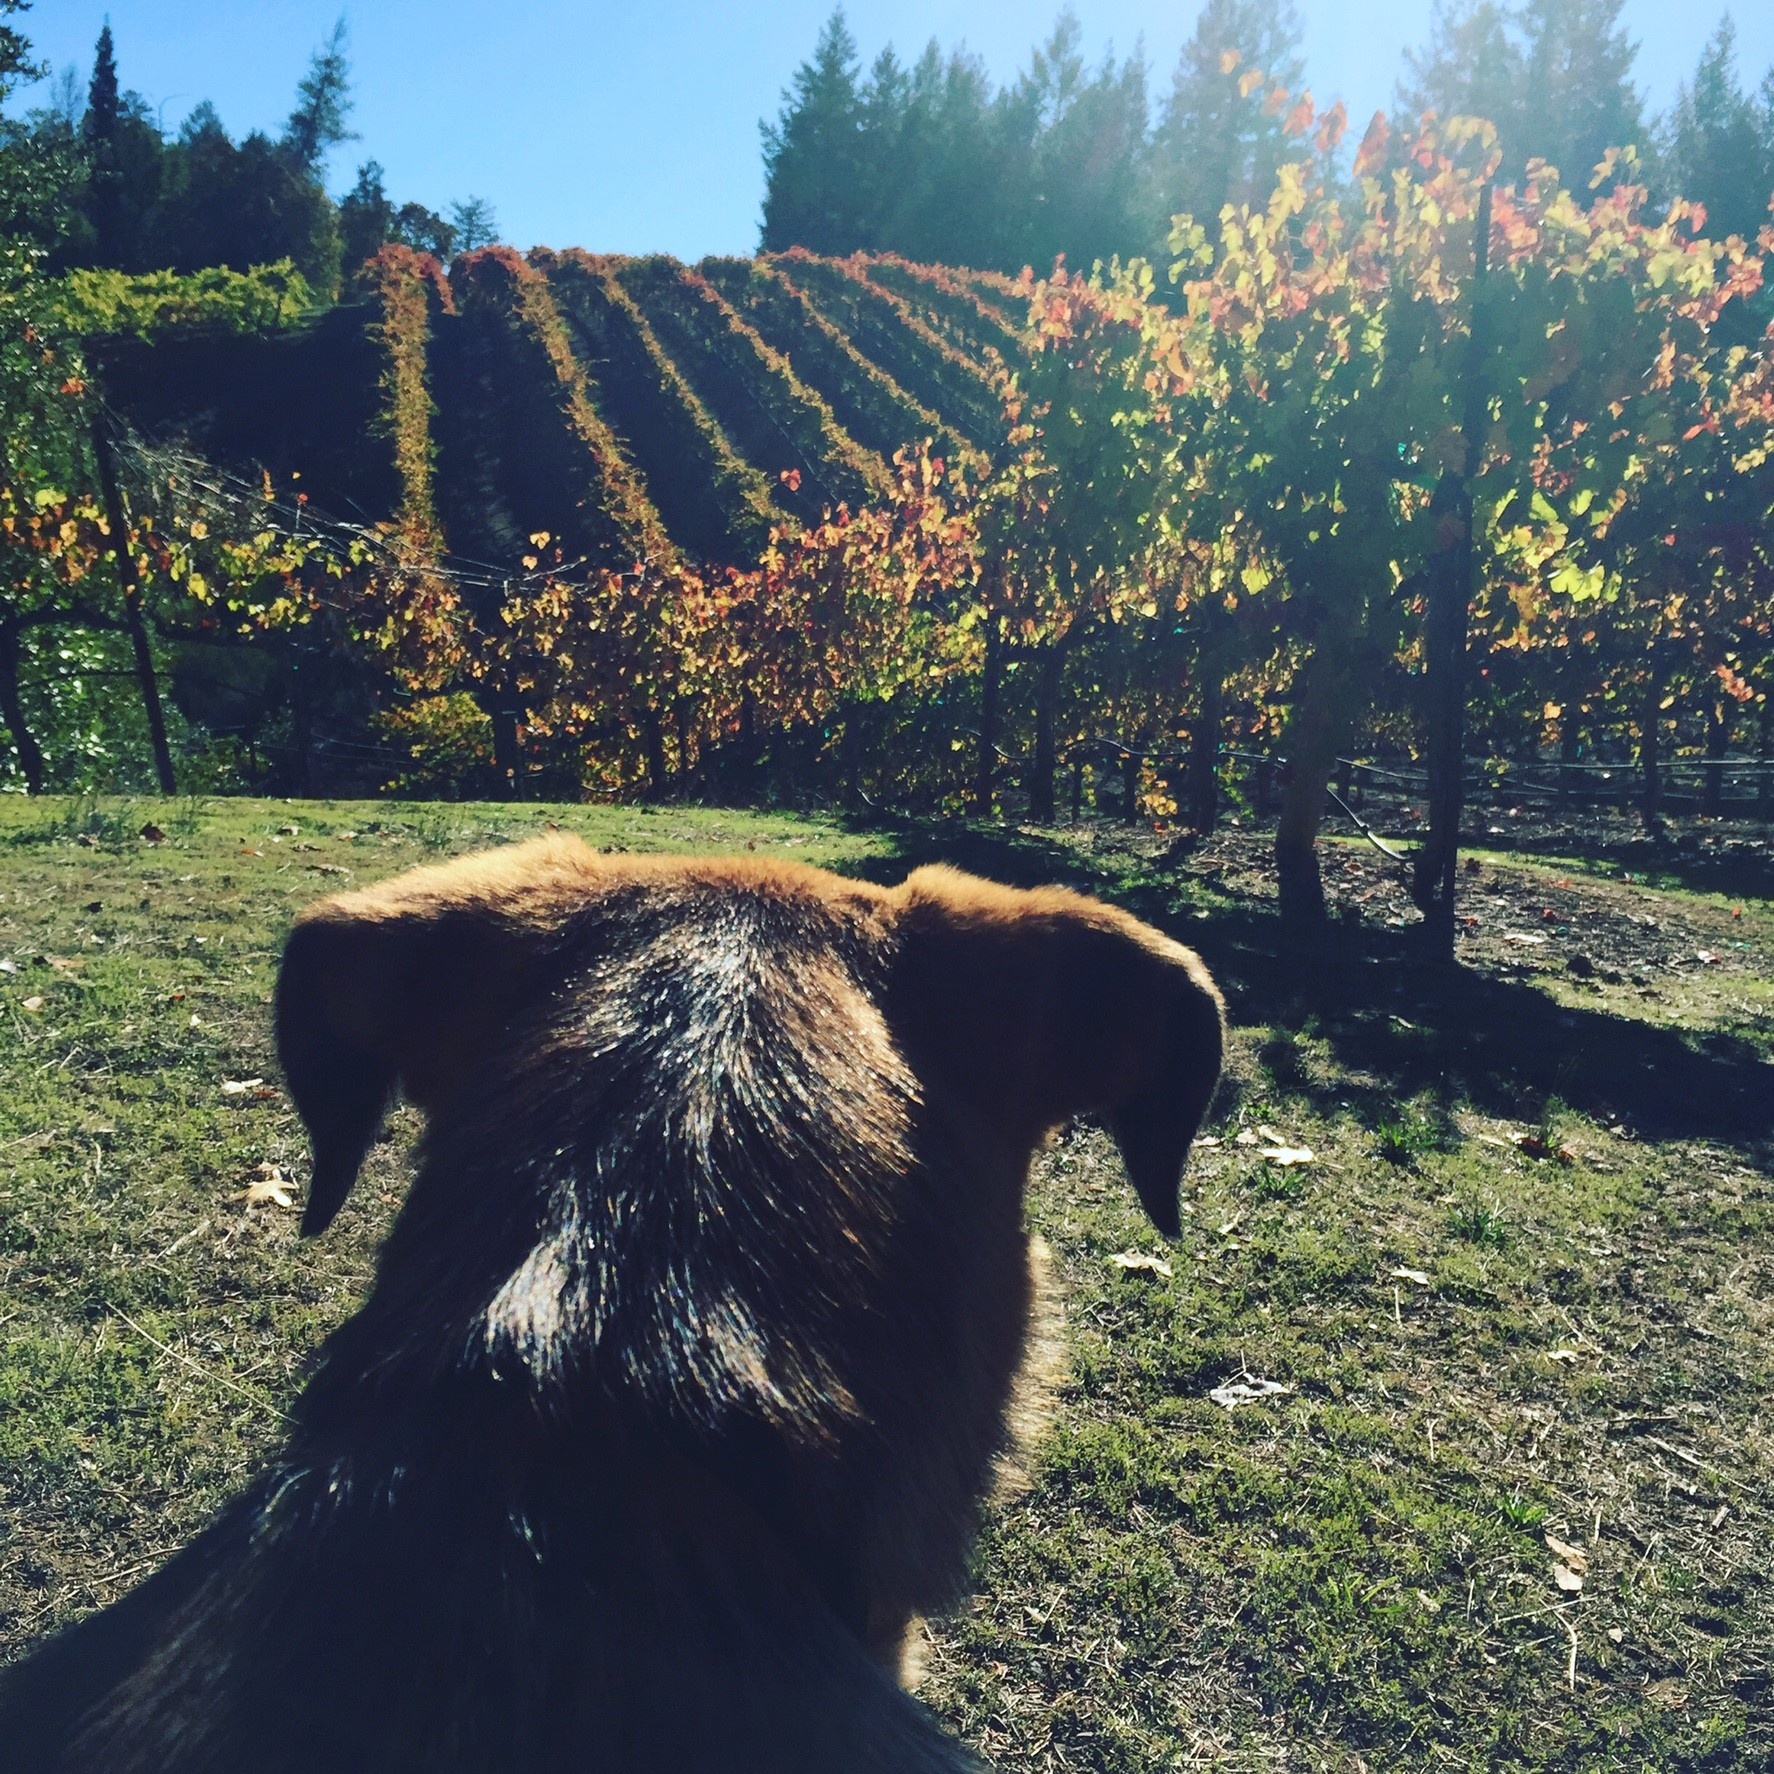 Elsa looking over the syrah.